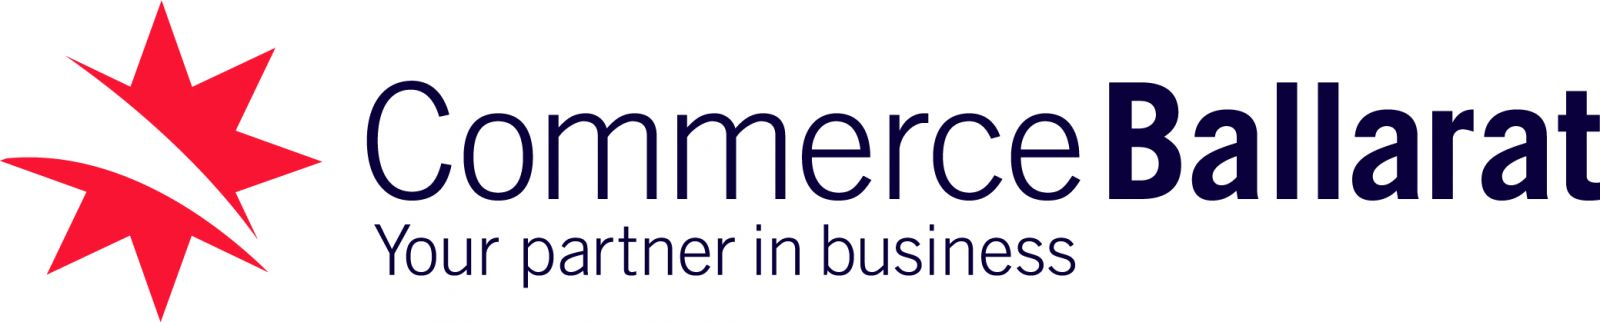 Commerce Ballarat Logo